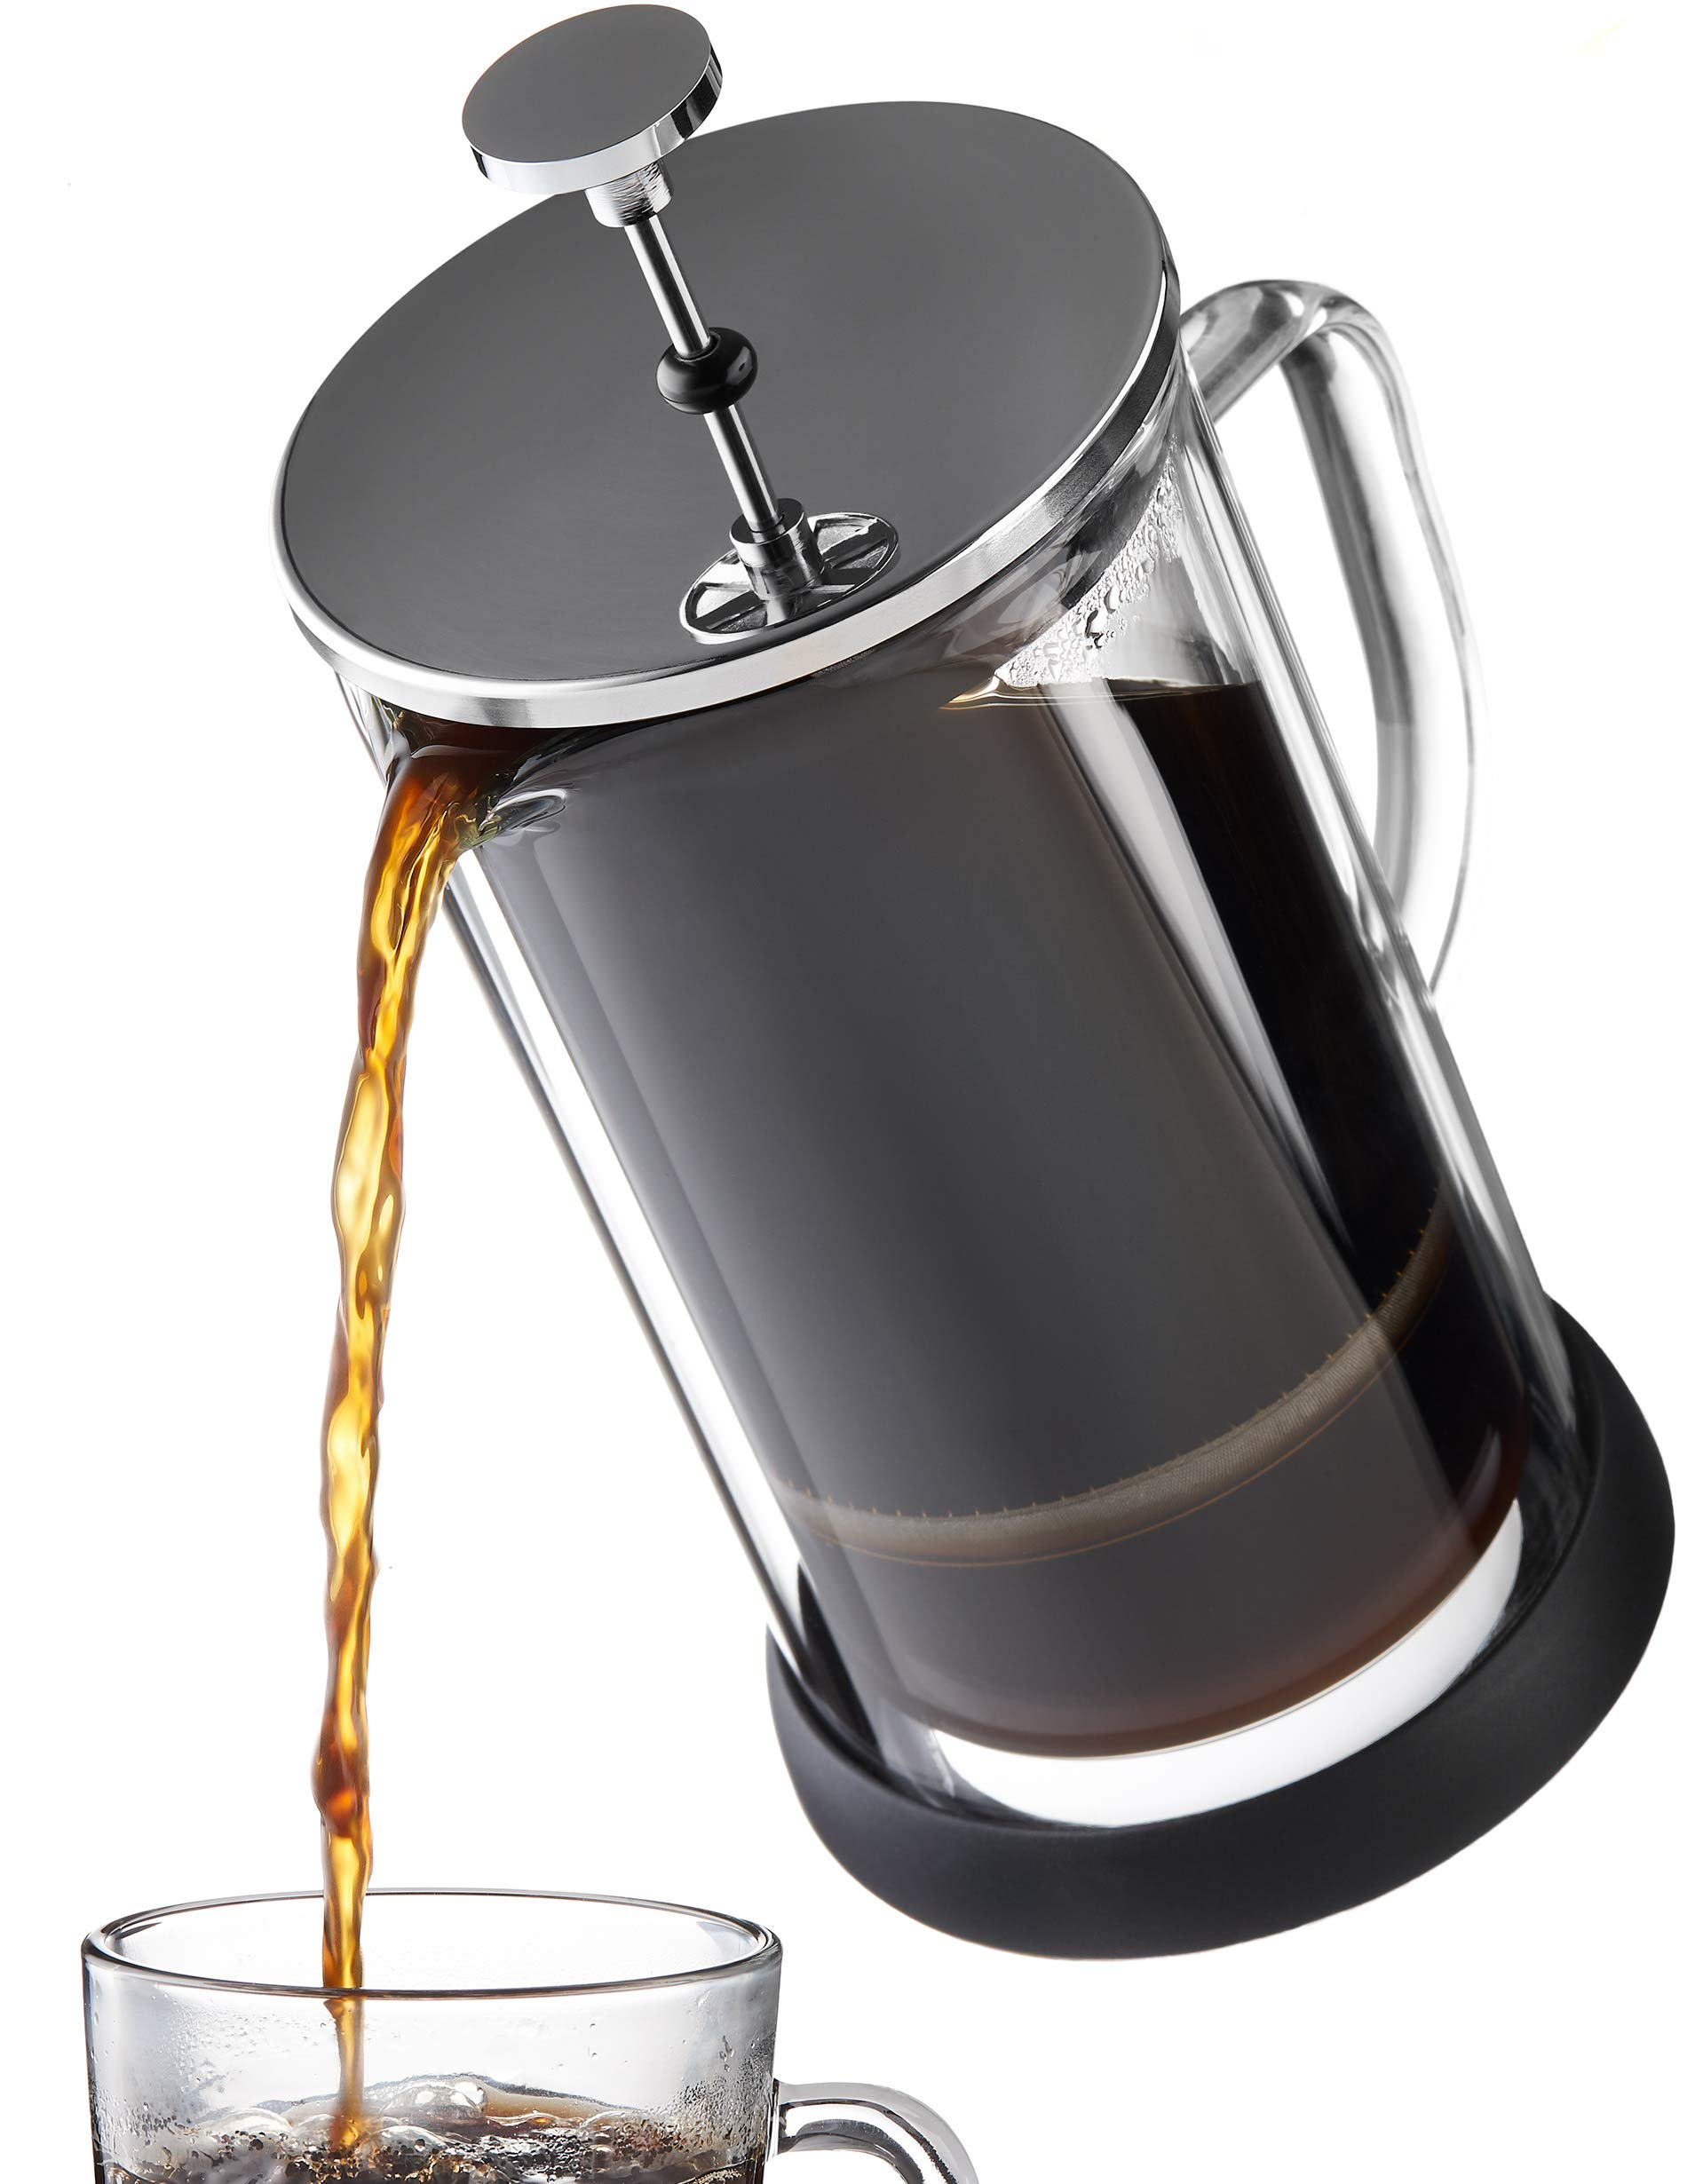 French Press Coffee Maker 34 oz - Innovative Double Glass Design Holds Heat, Dual Filters Provide a Smooth Brew - Includes 2 Additional Mesh Filters